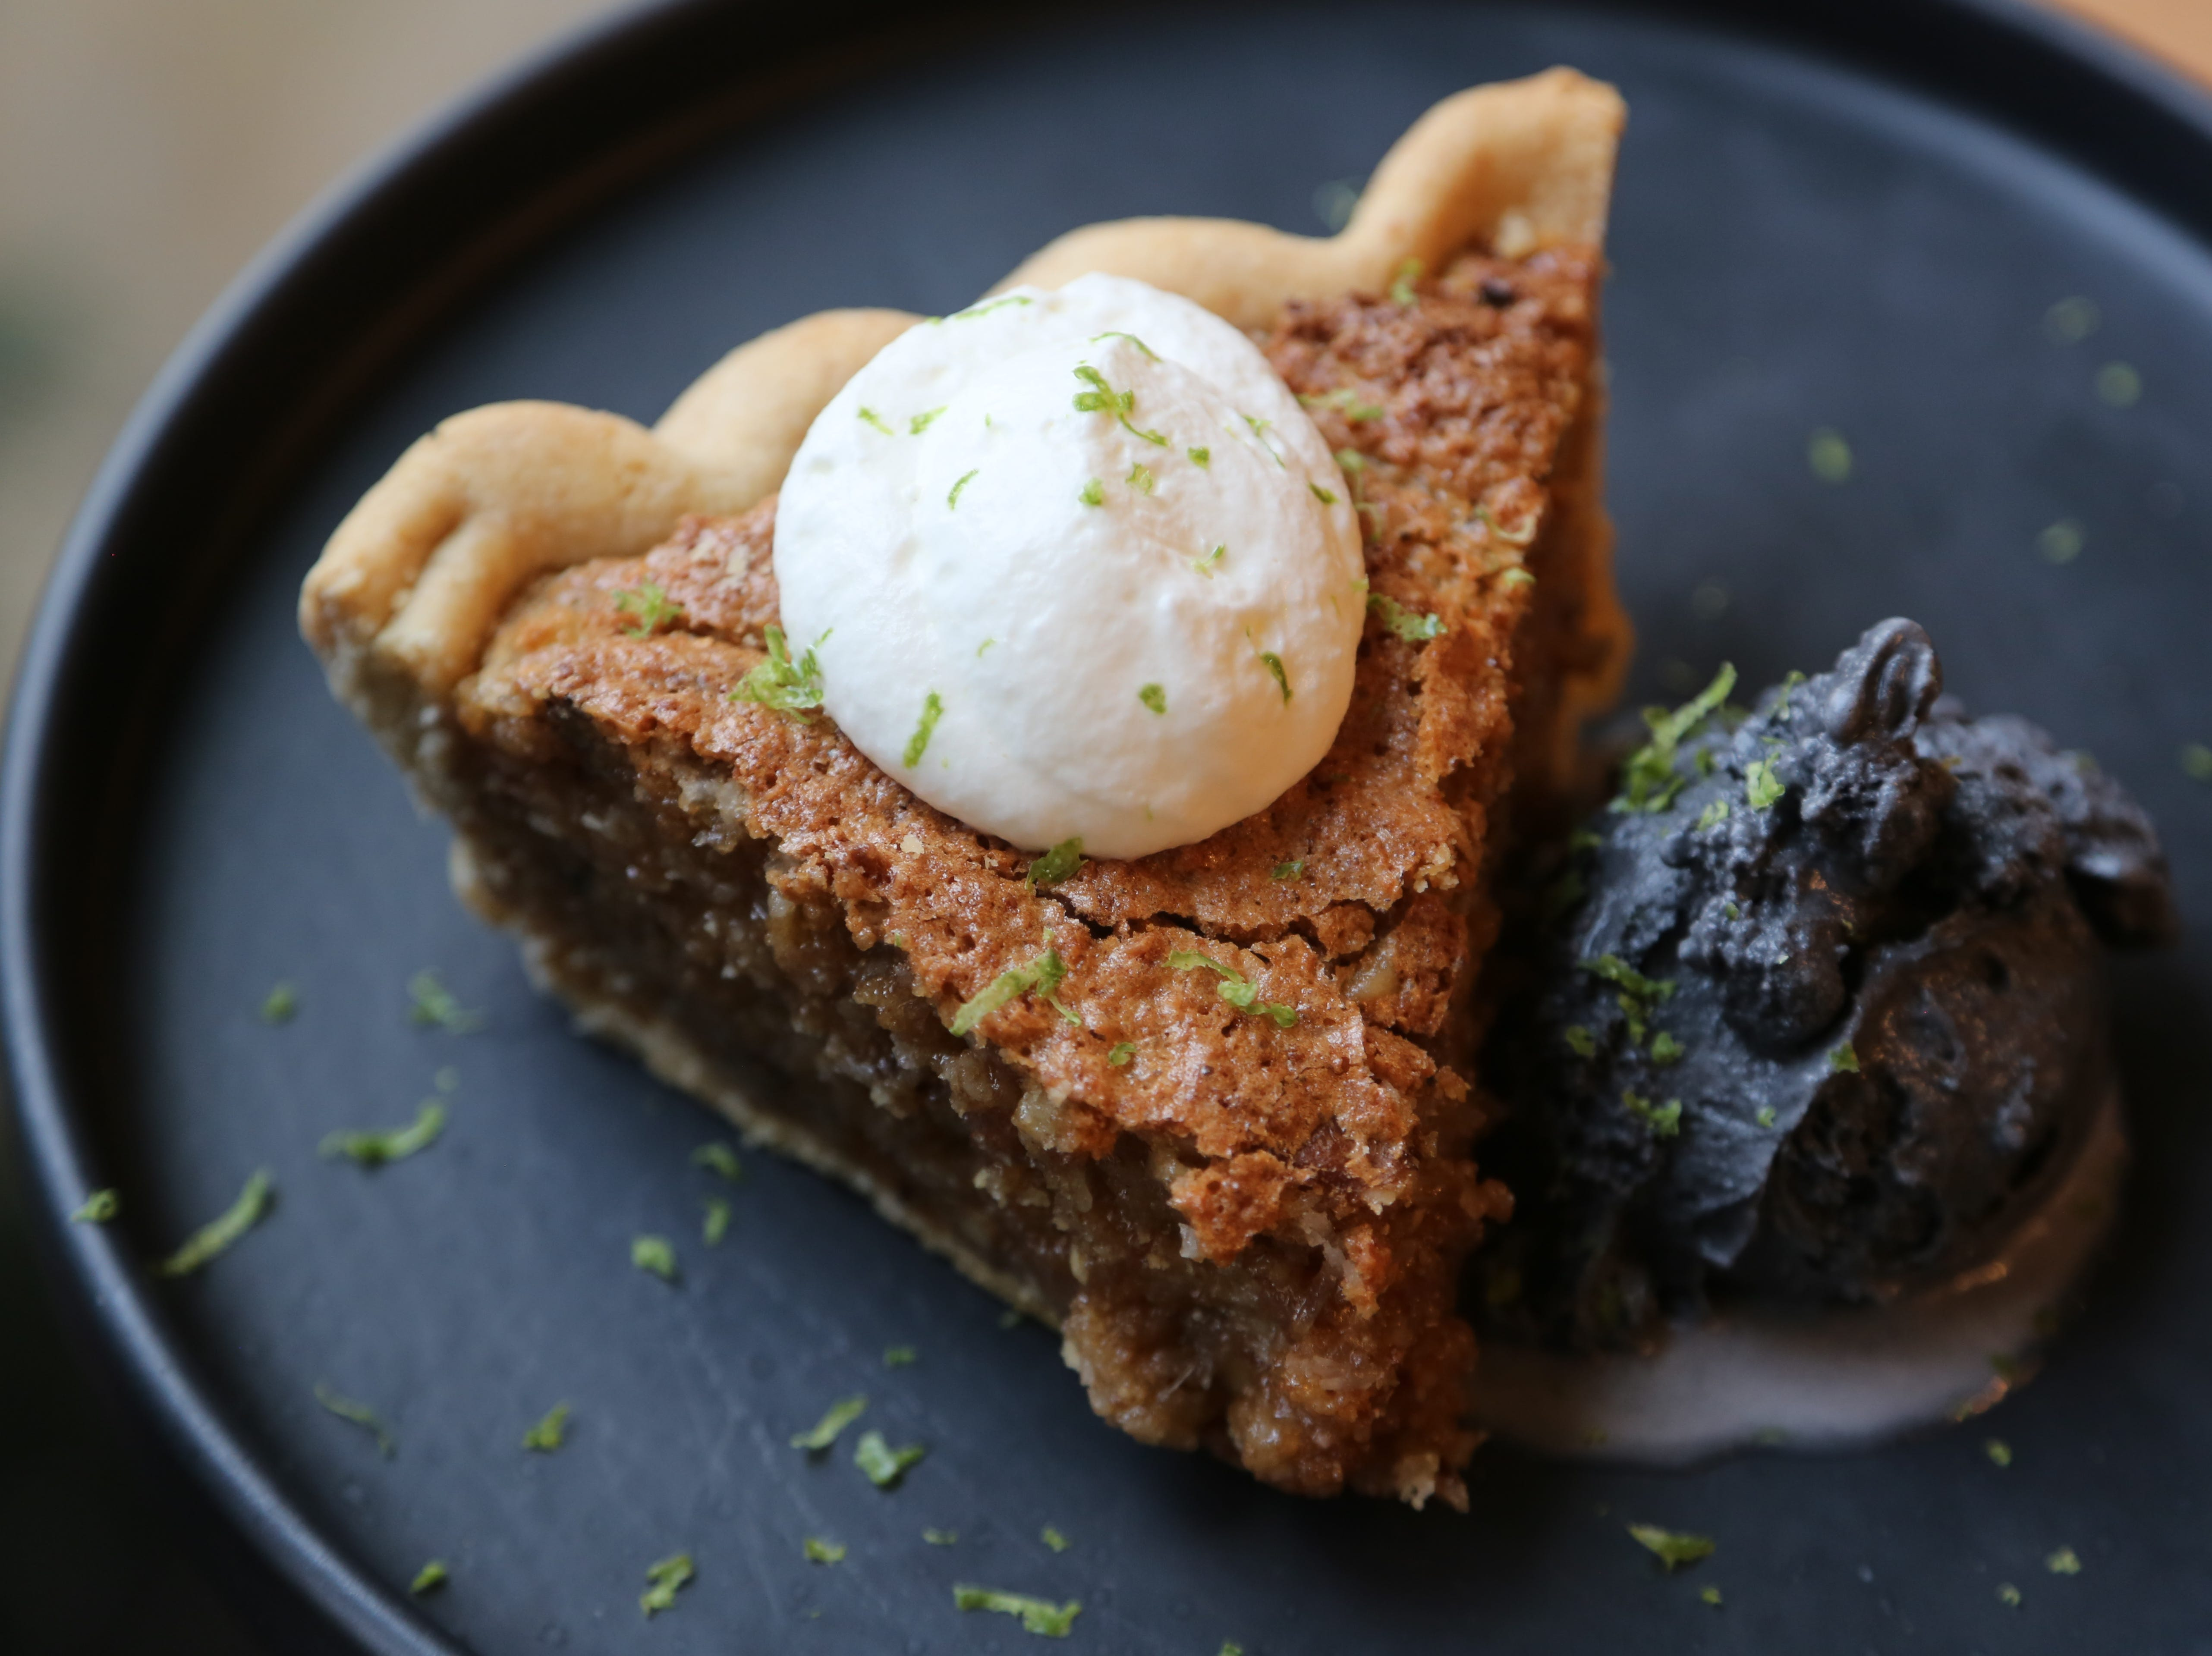 Coconut and walnut pie a la mode with lime-flavored charcoal ice cream from Hazel, Ravines & Downtown in Birmingham.